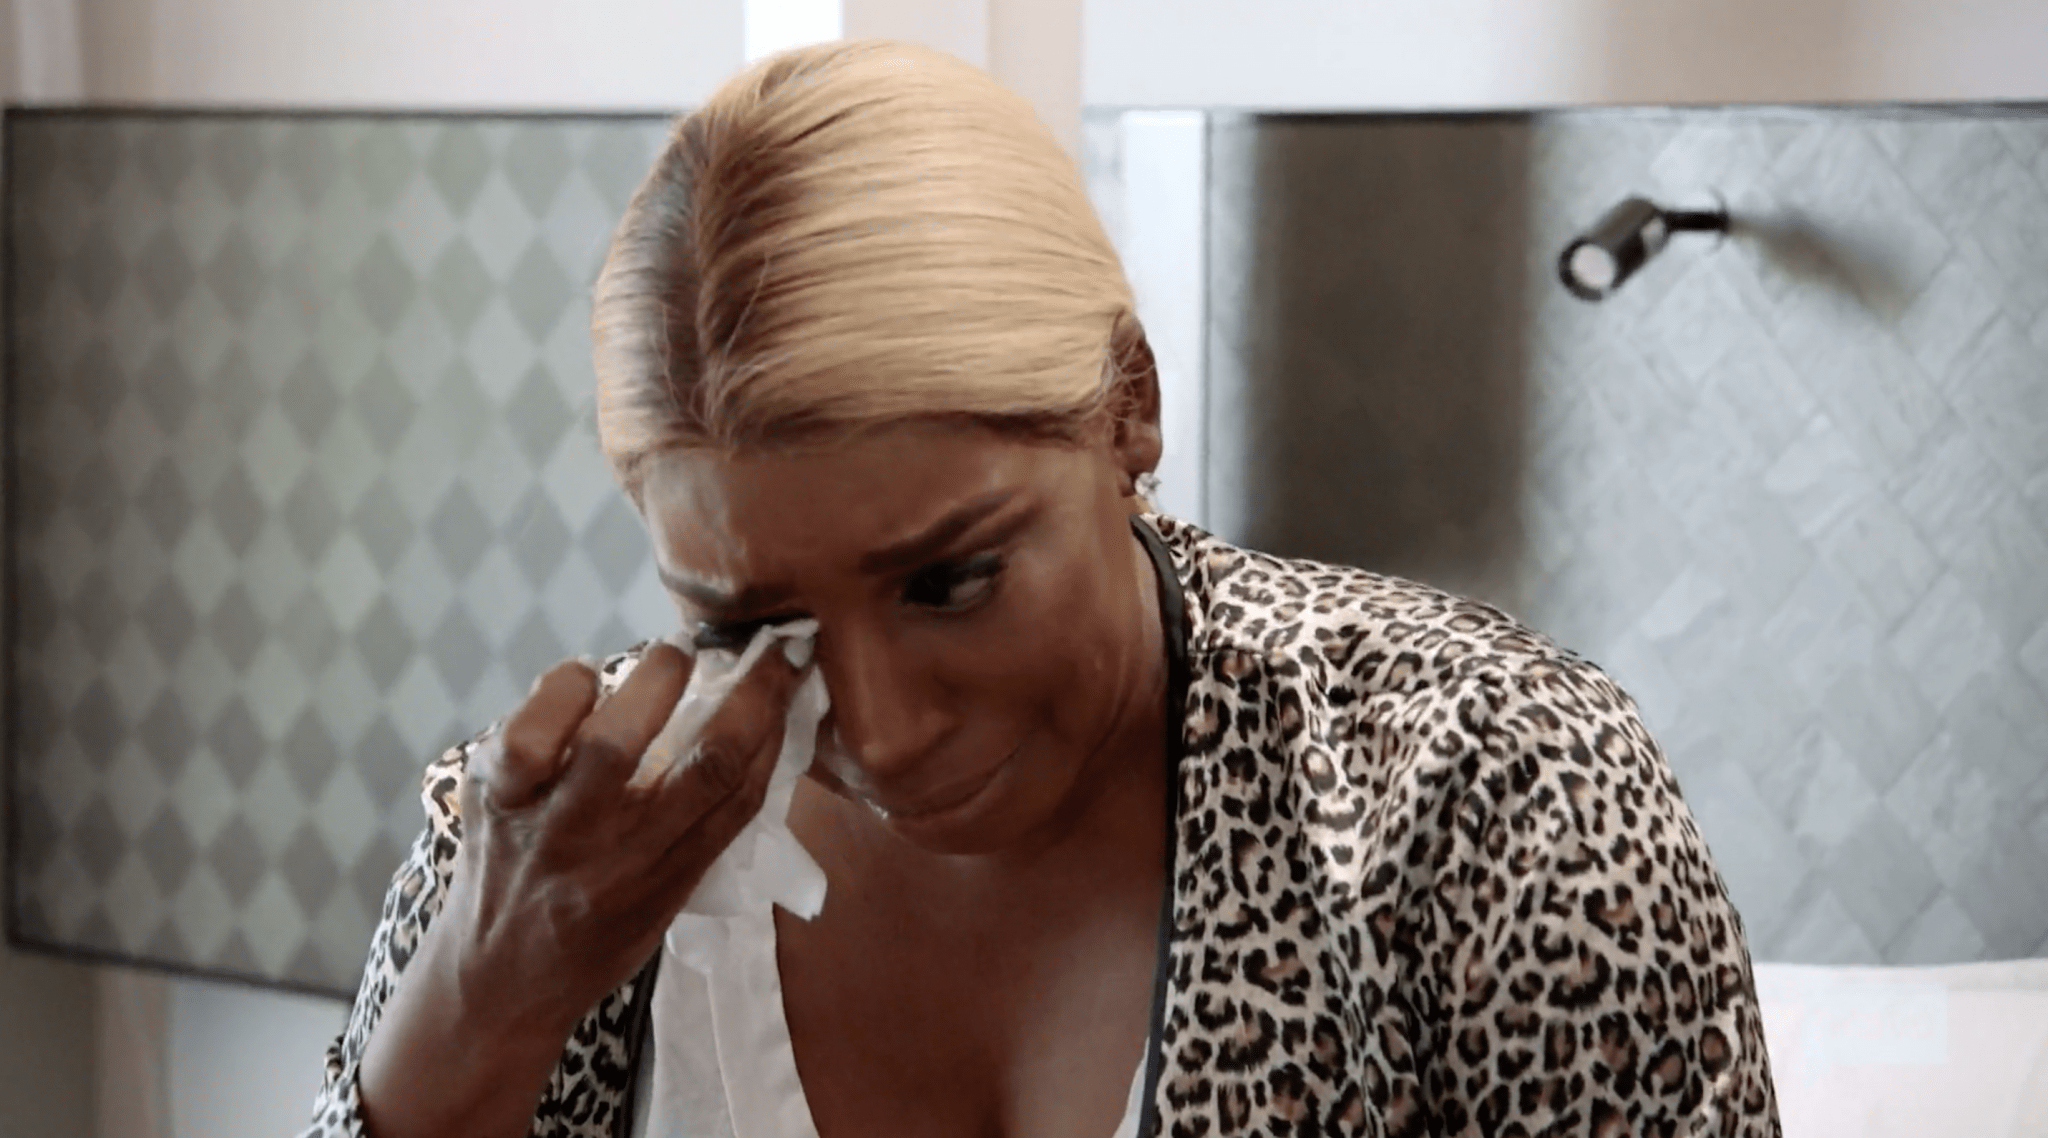 NeNe Leakes Gets Bashed For Talking About Her RHOA Drama Amidst The Tragedy Of Nipsey Hussle's Killing